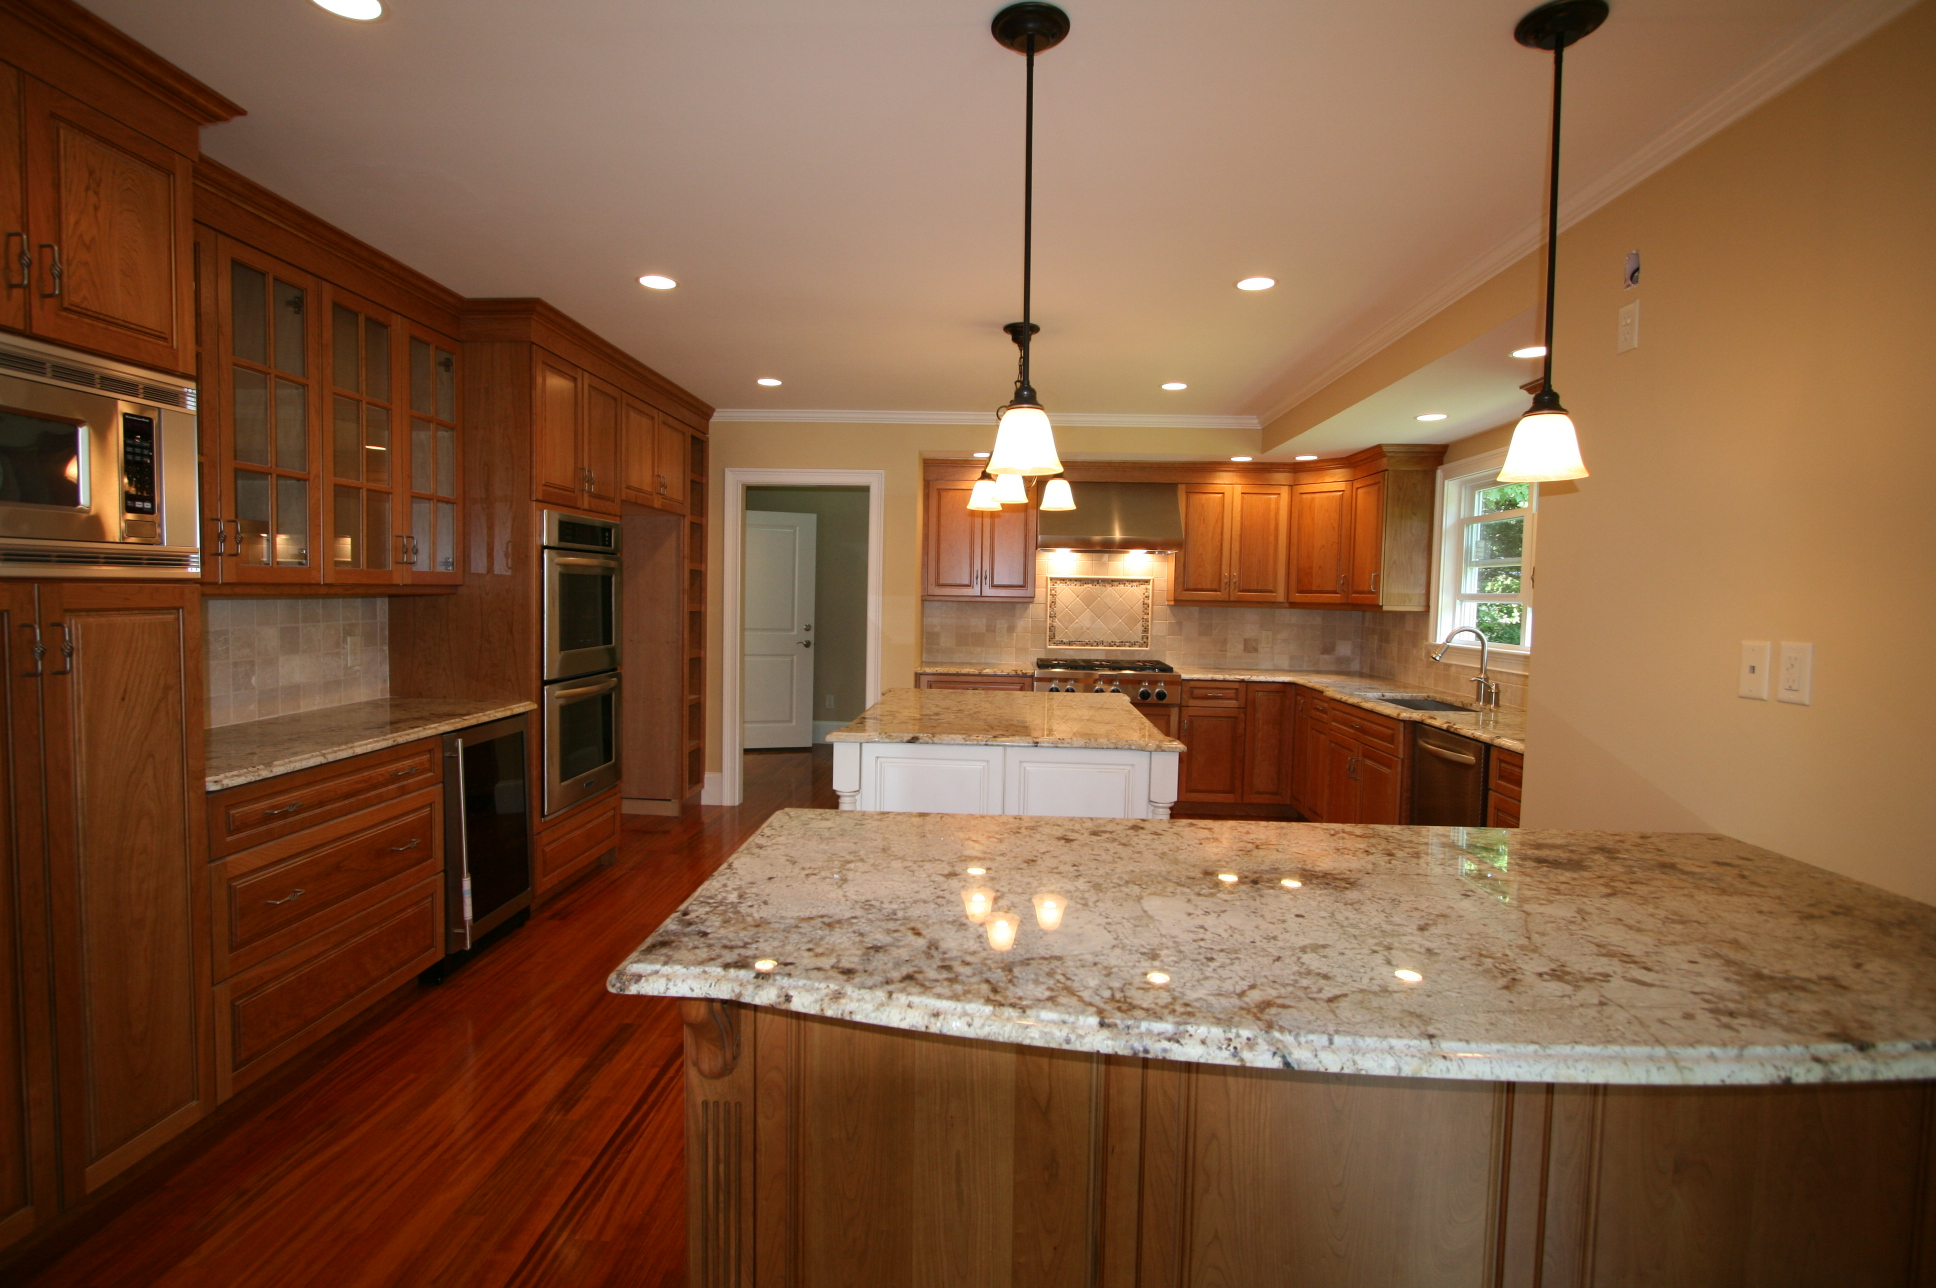 Check out the pics of new kitchens halliday construction for Pictures of new kitchens